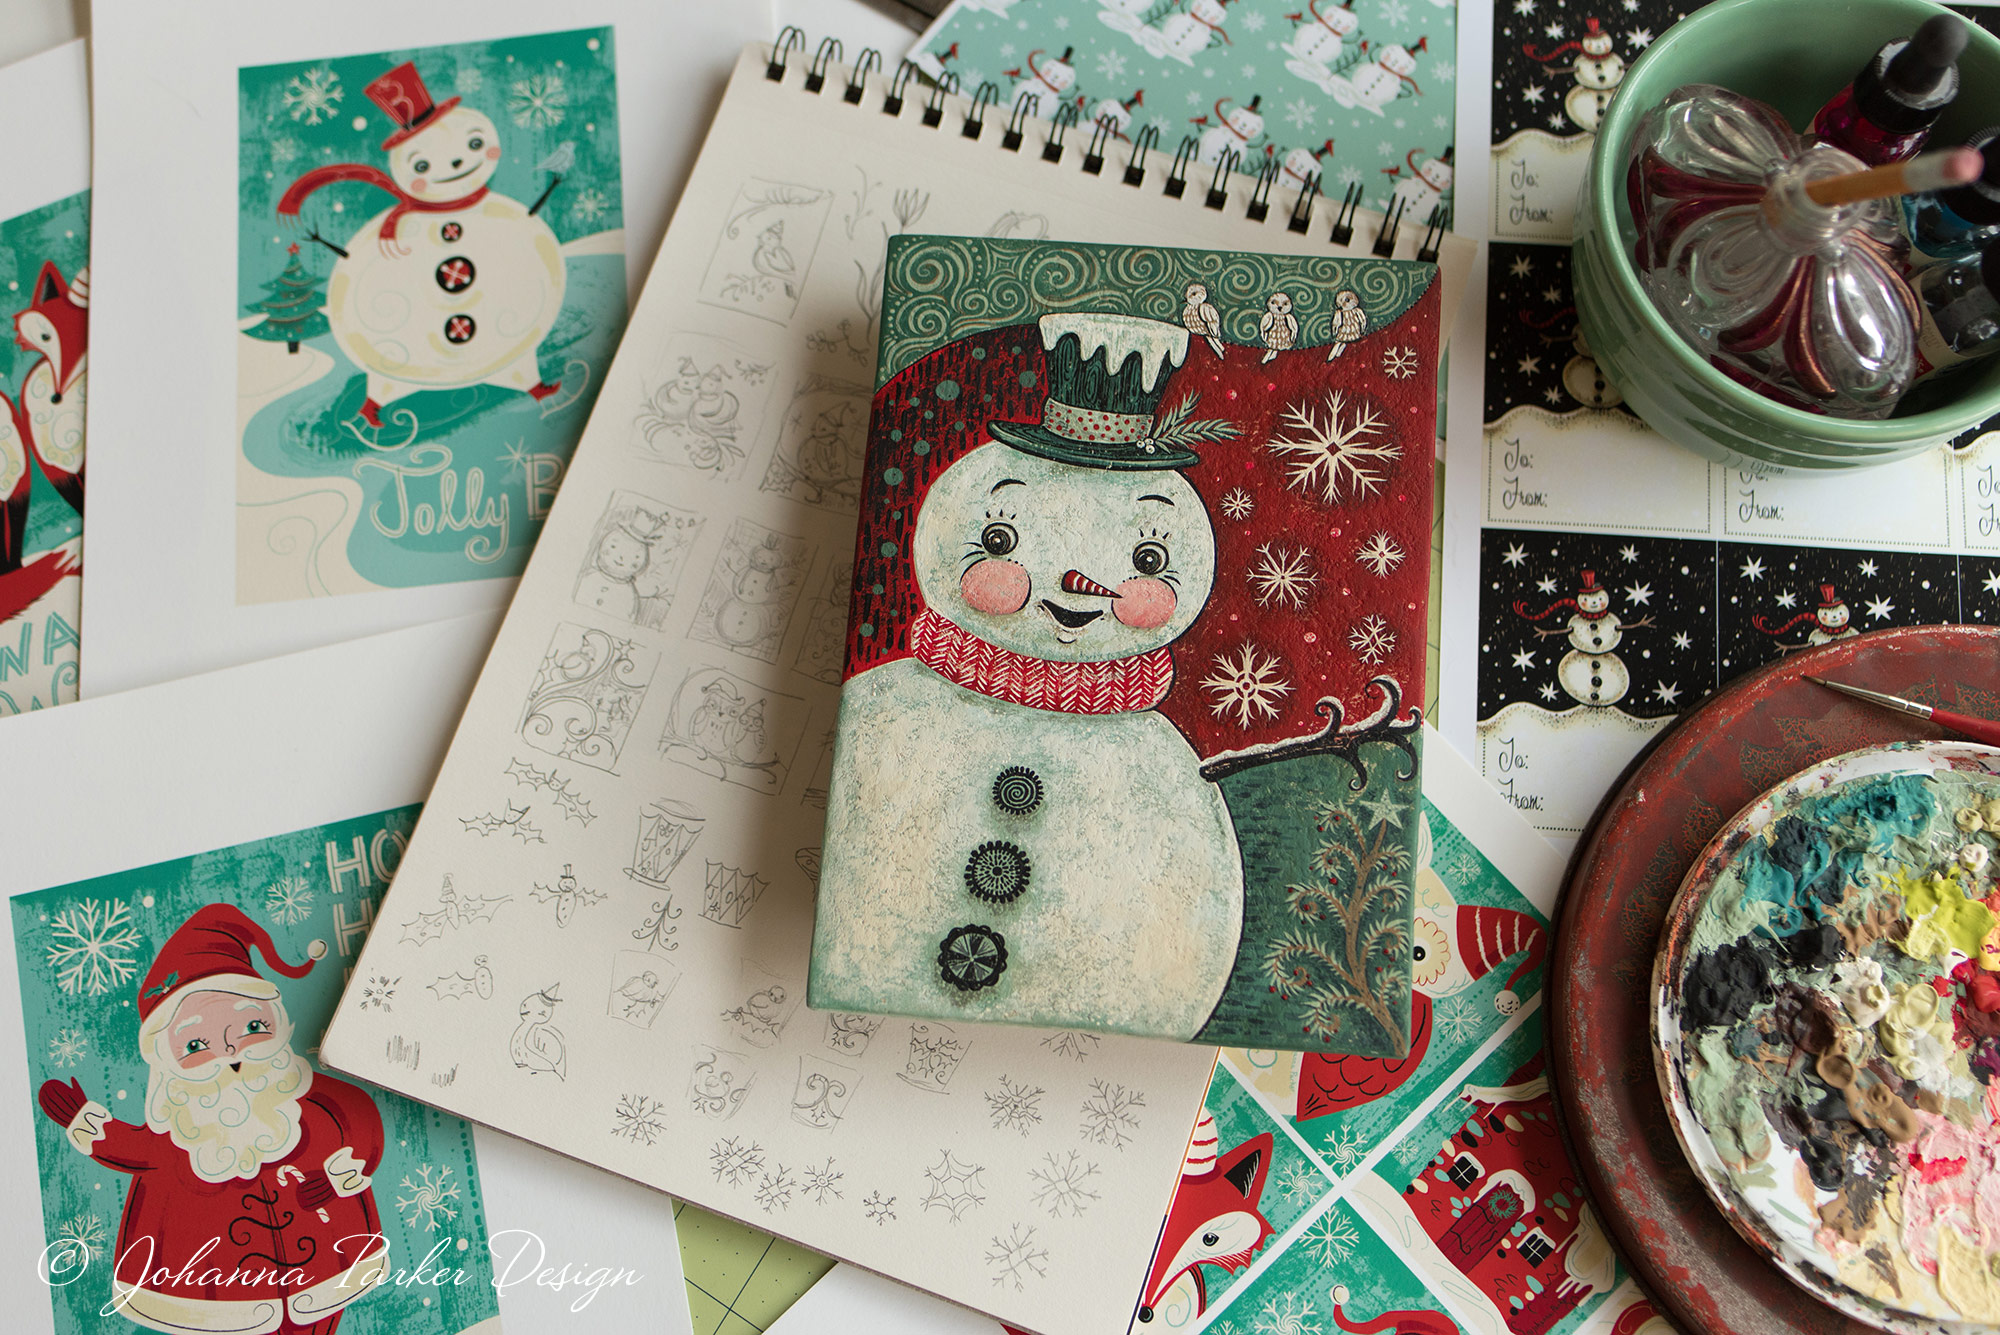 This vignette shows a snapshot of various holiday art projects all grouped together. It's a fun mix of my printed graphics, rough pencil sketches, a painted art panel, pattern repeats and illustrated gift tags ~ All a variety of designs that I could easily delve into on any given day!